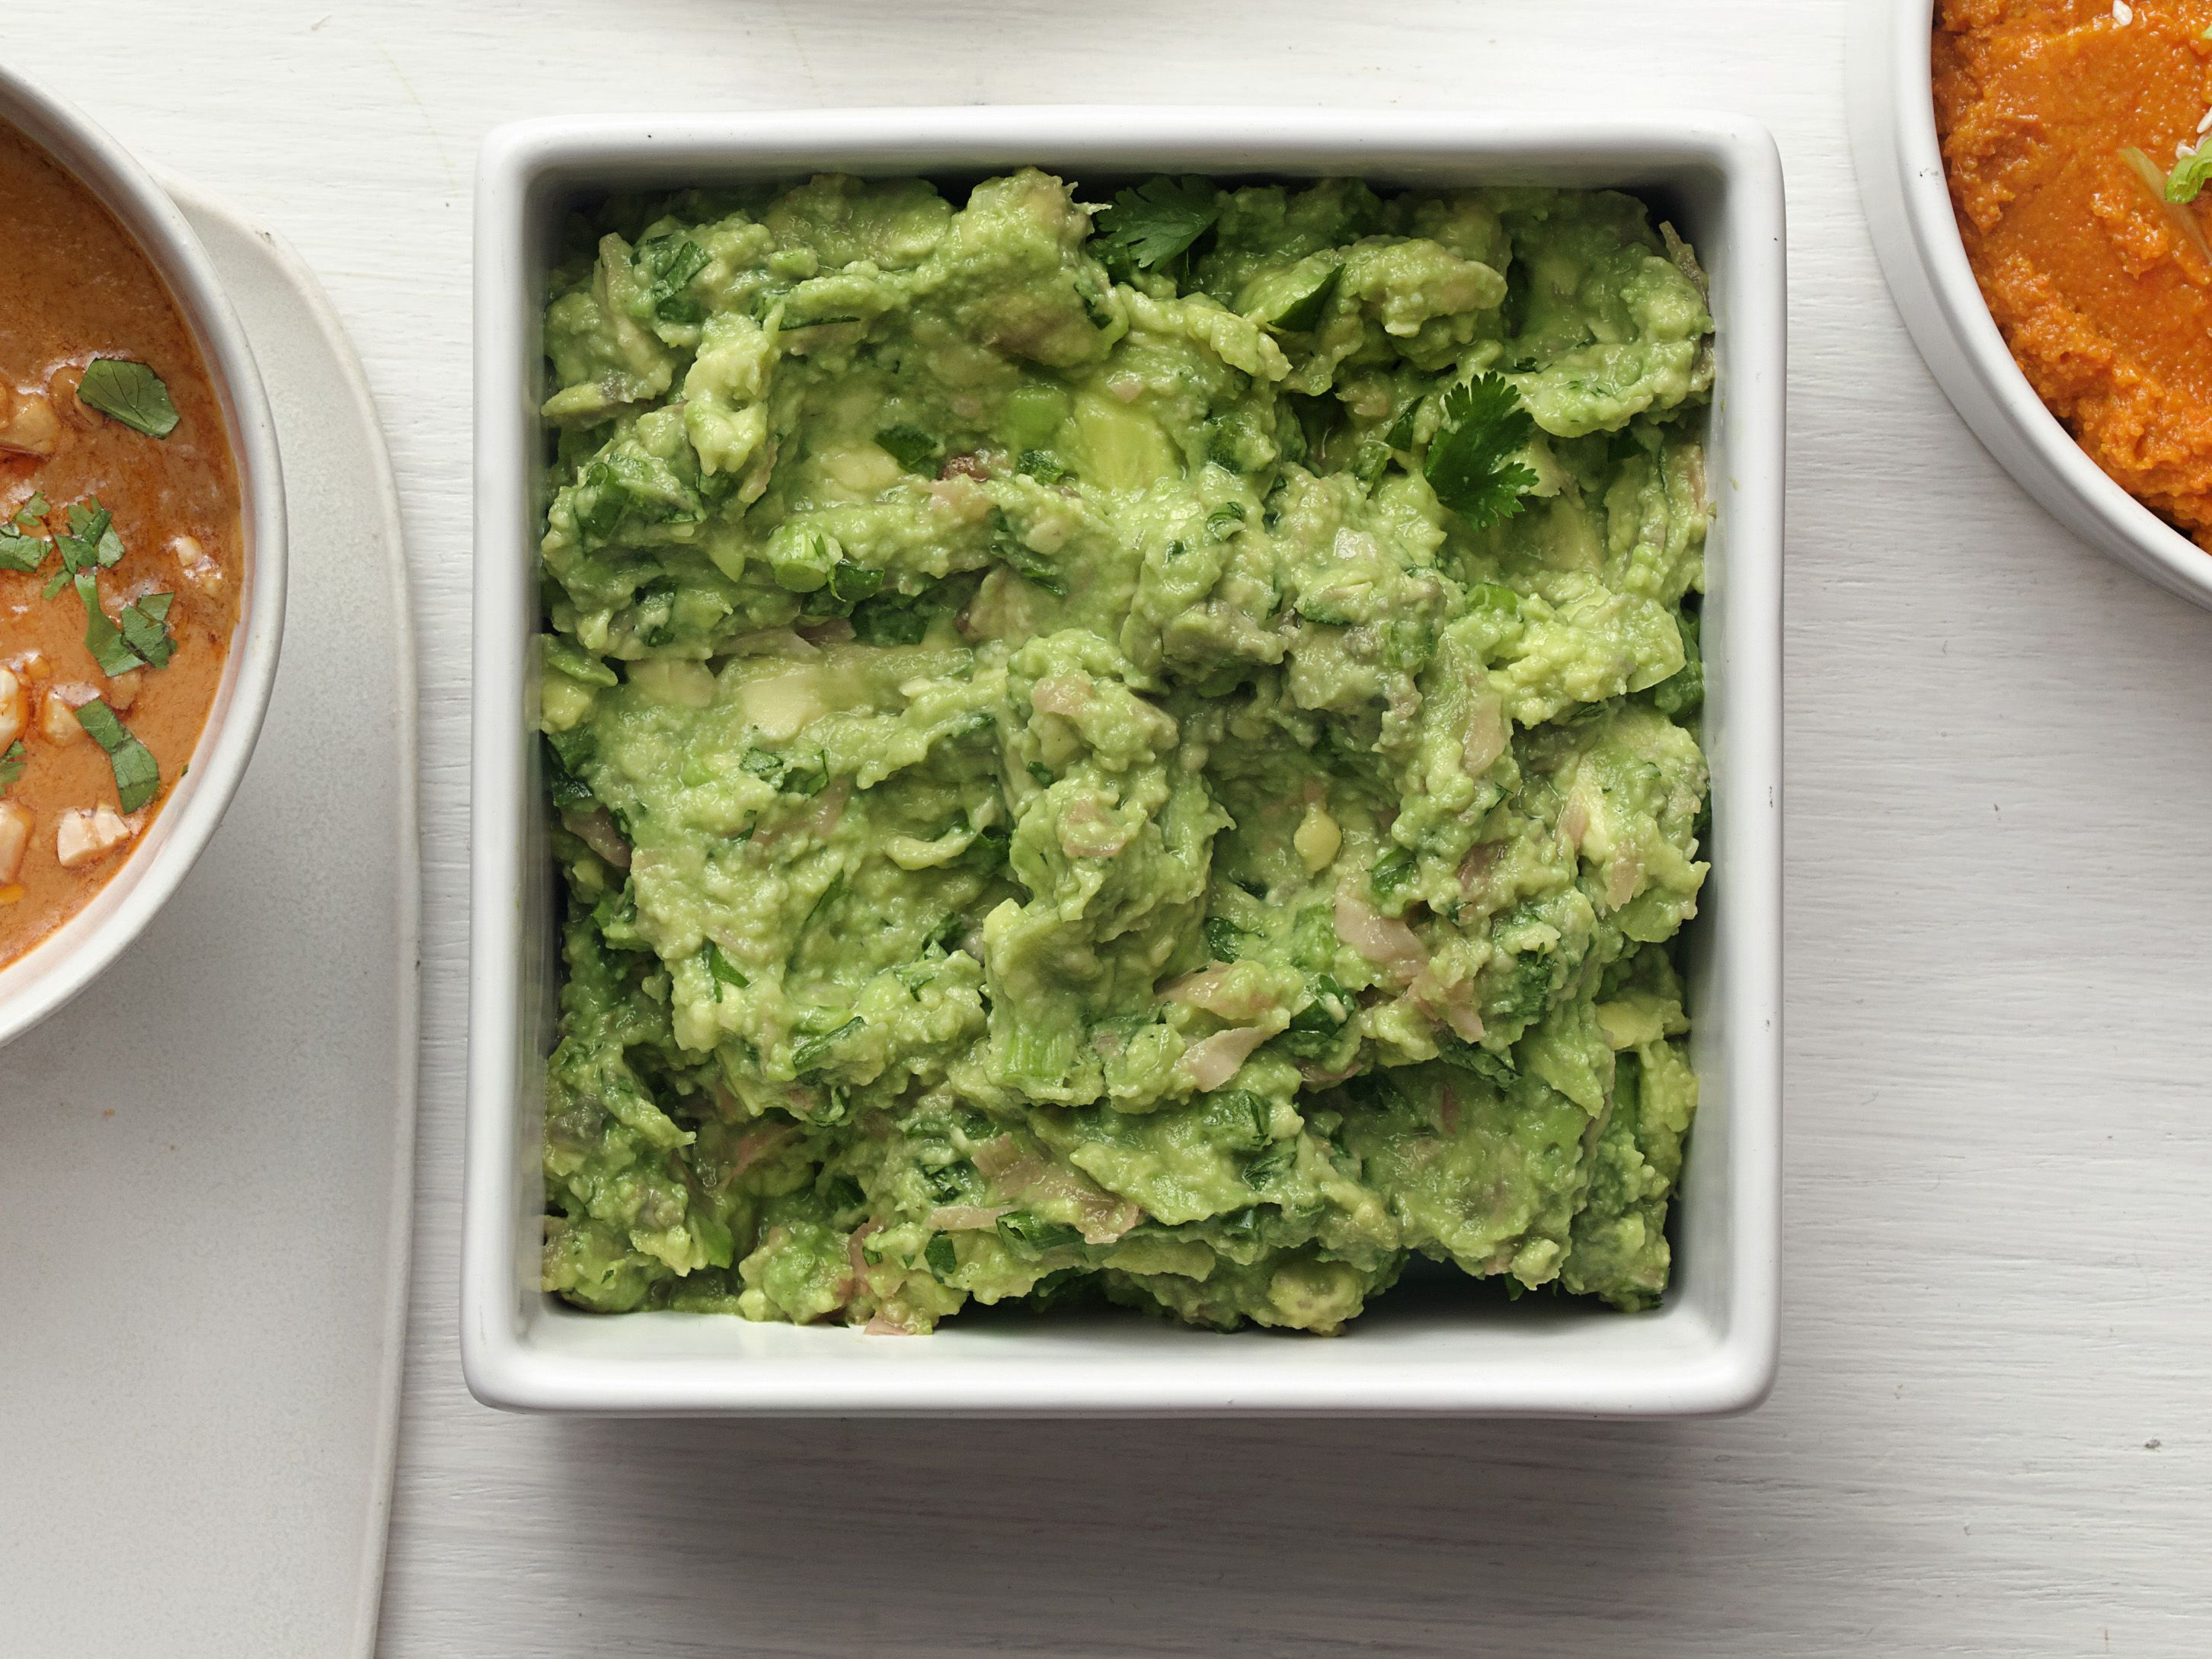 Wasabi guacamole with pickled ginger food network kitchen food wasabi guacamole with pickled ginger food network kitchen food network forumfinder Choice Image